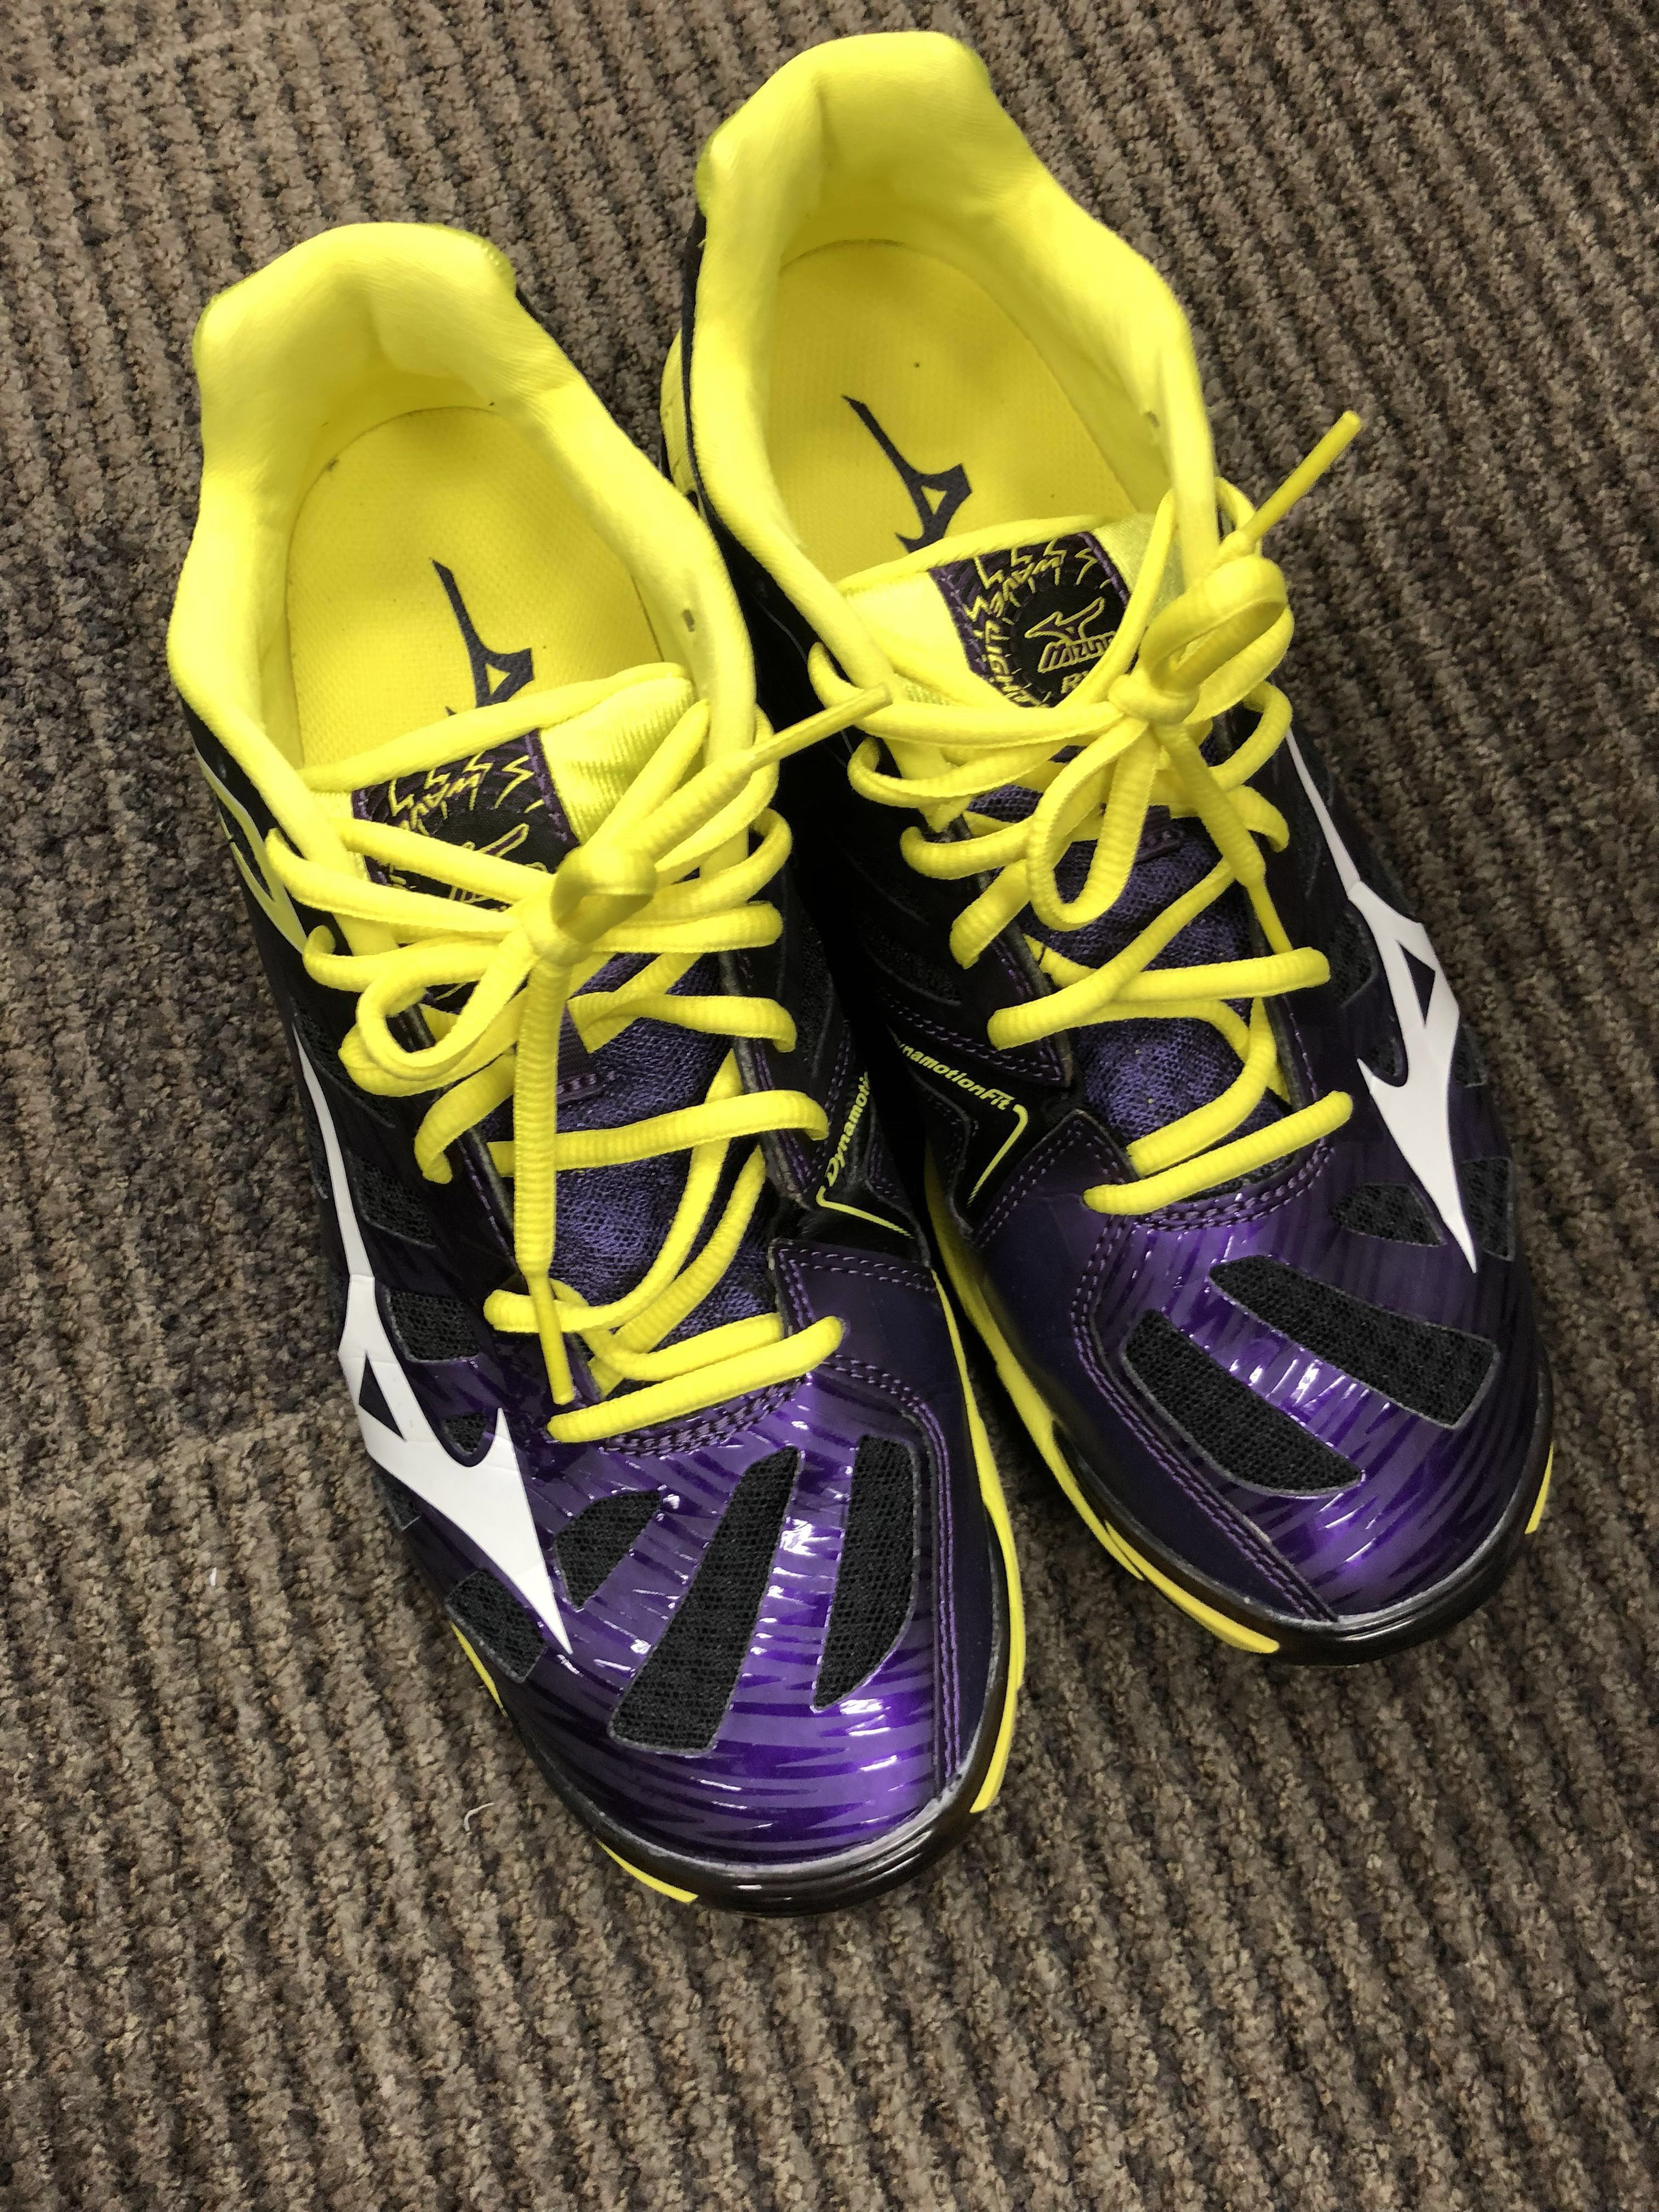 mizuno volleyball shoes where to buy liverpool logo